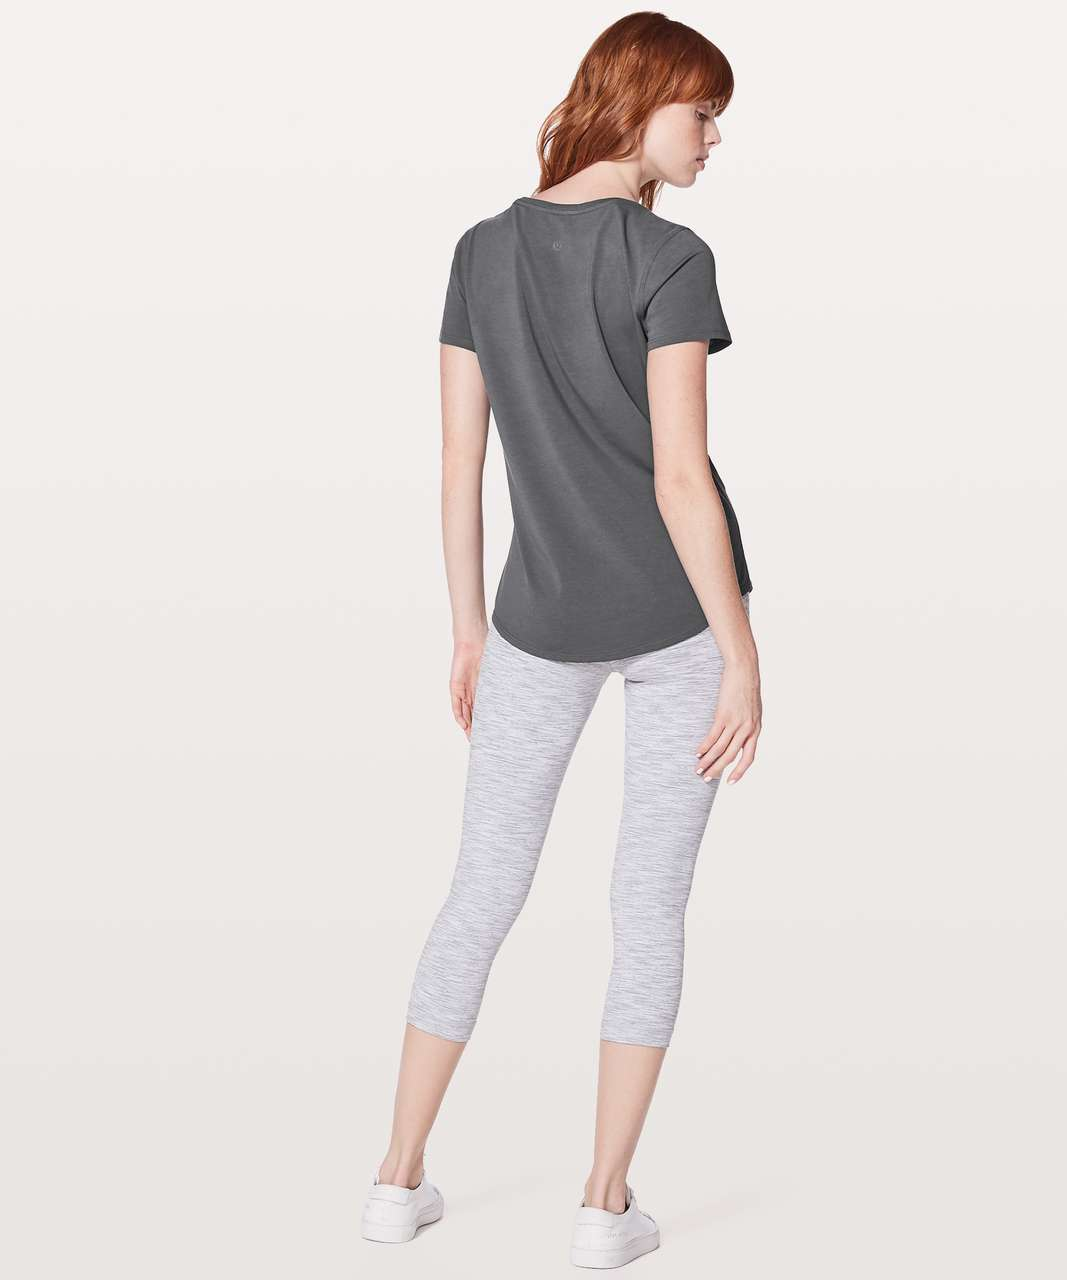 Lululemon Love Tee V - Dark Shadow